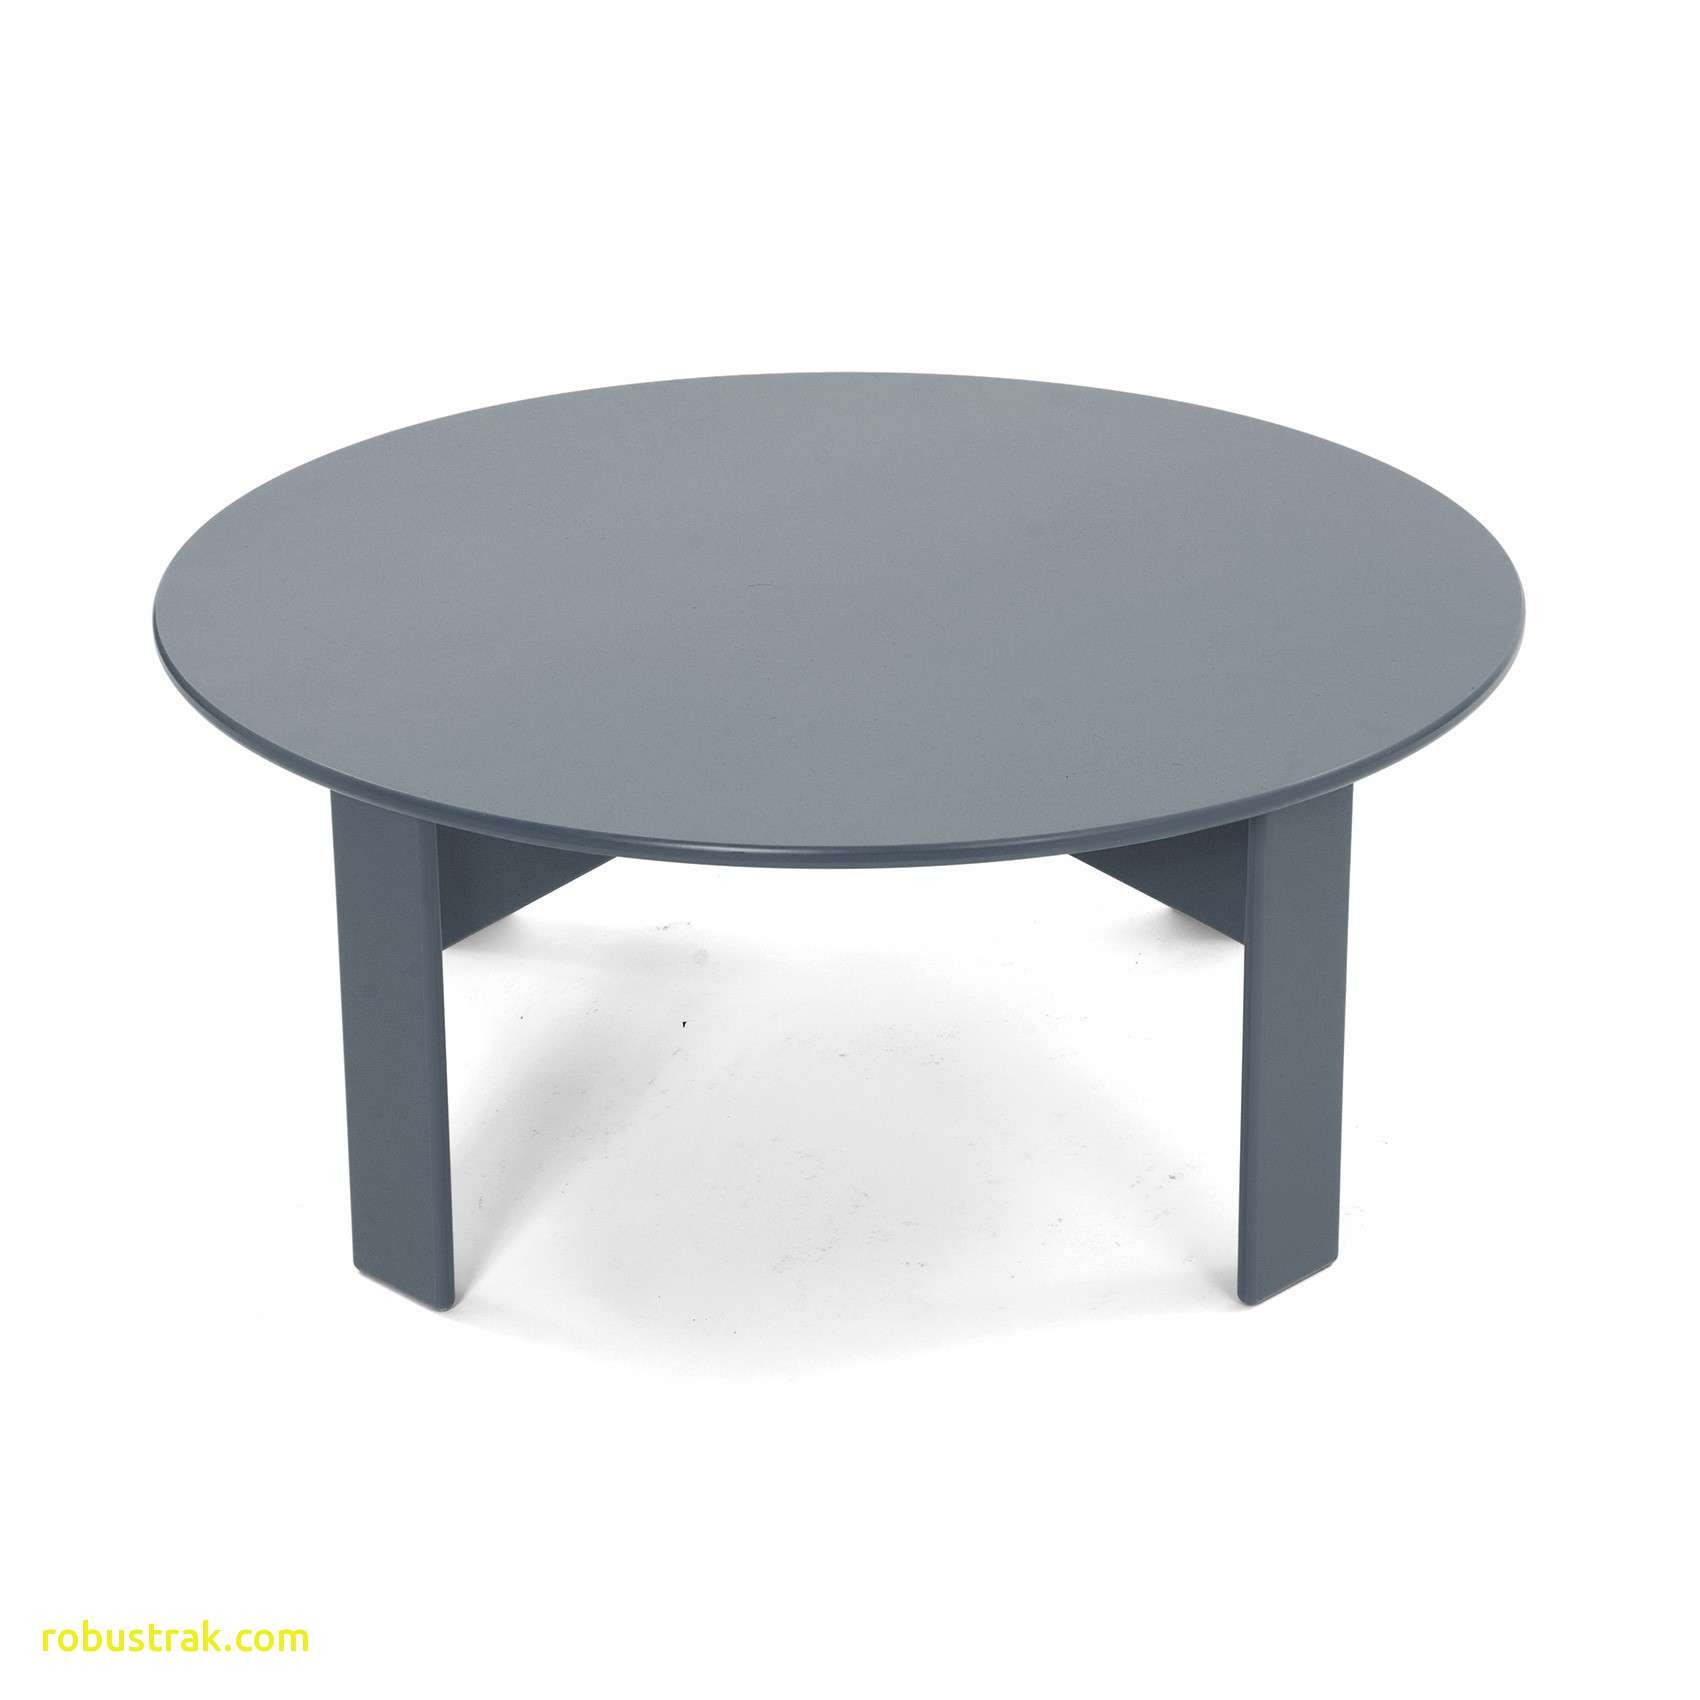 Low Round Glass Vase Of 8 Round Lift top Coffee Table Pics Coffee Tables Ideas within Round Lift top Coffee Table Collection Round Lift top Coffee Table Awesome Square Glass top